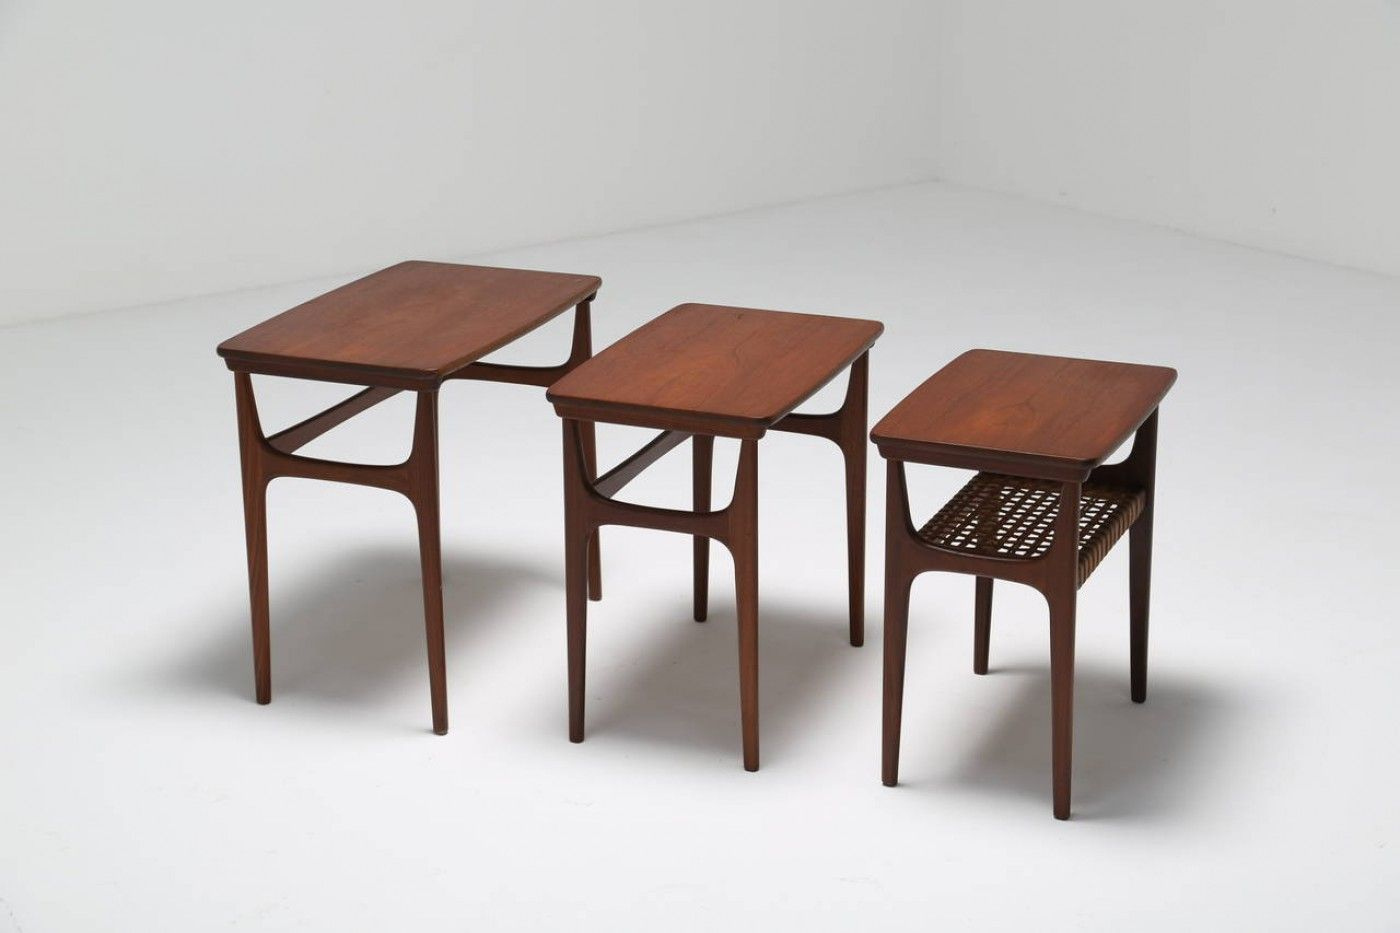 Amazing photo of Danish Teak Nesting Tables from Heltborg Mobler Set of 3 for sale at  with #3E261E color and 1400x933 pixels